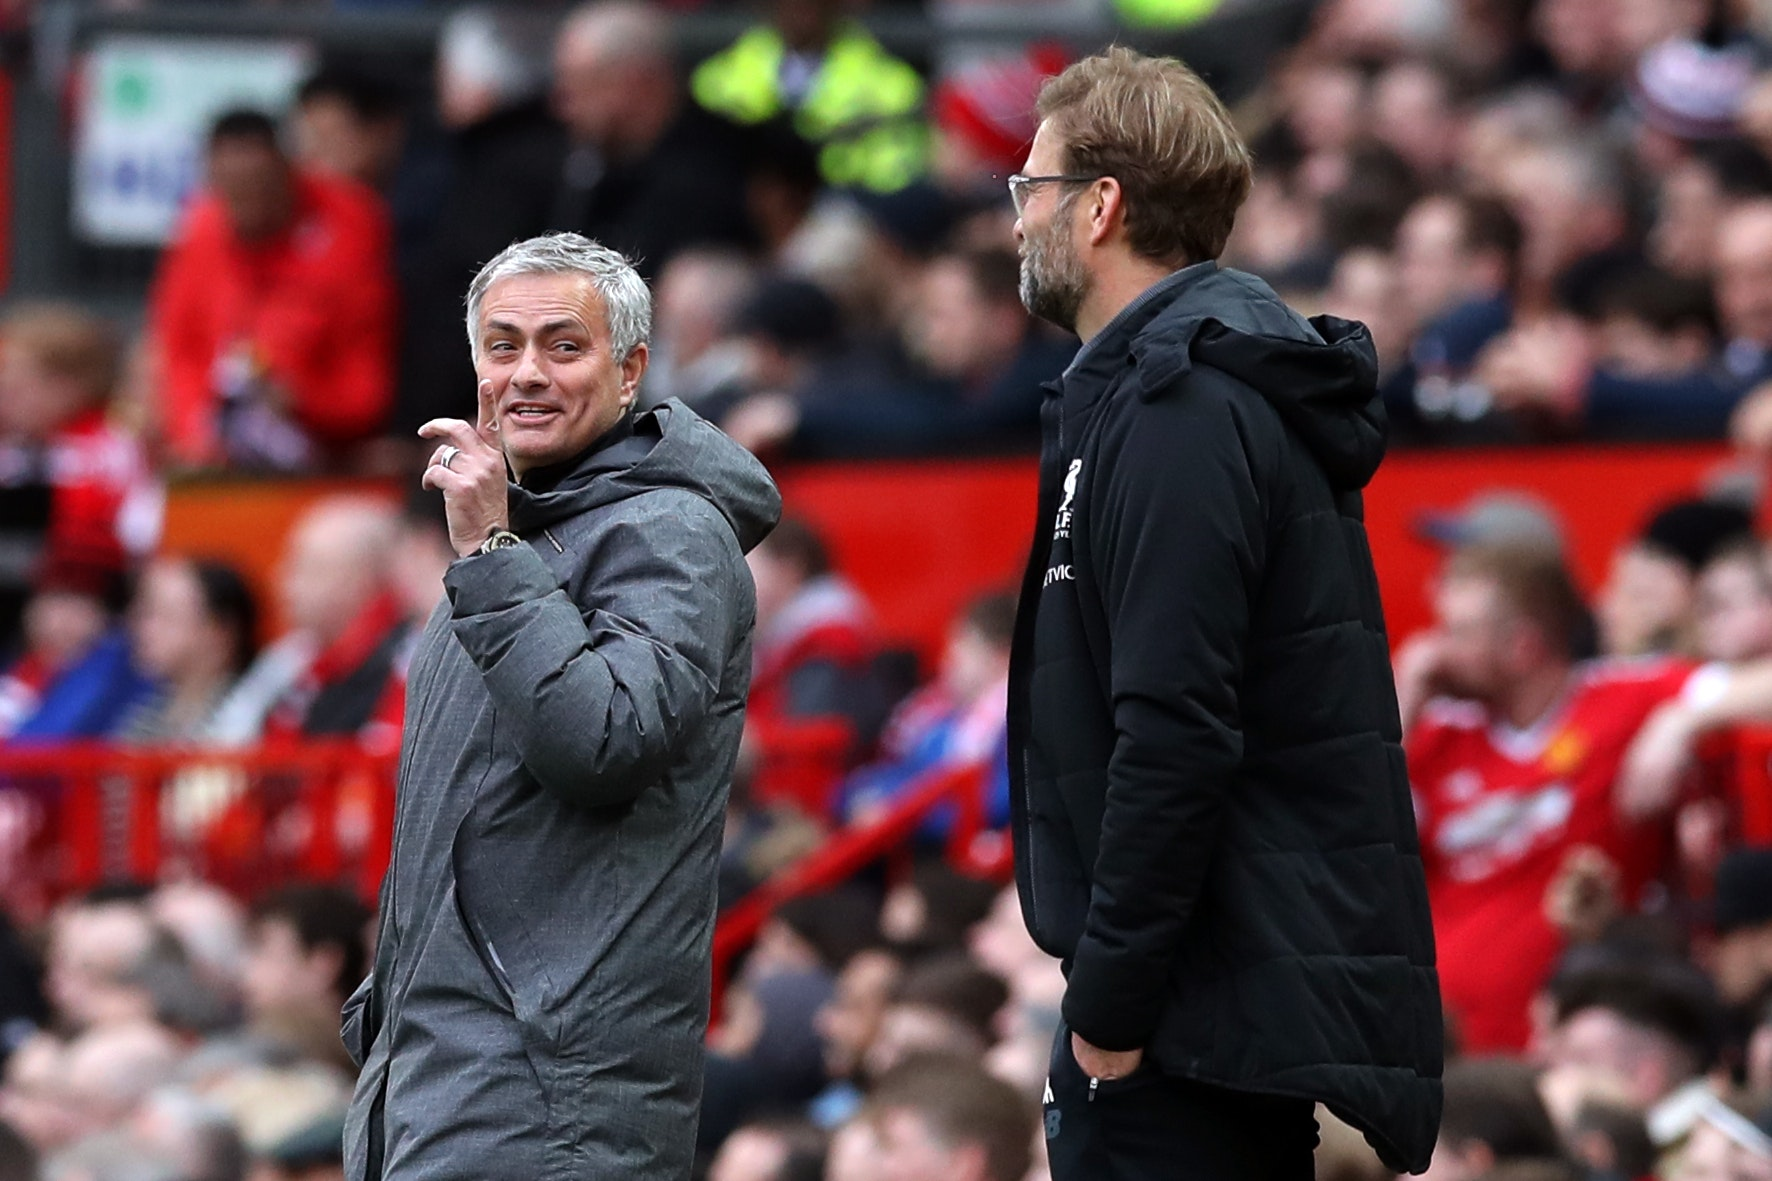 Jose Mourinho, left, and Jurgen Klopp will pit their wits against each other again on Sunday